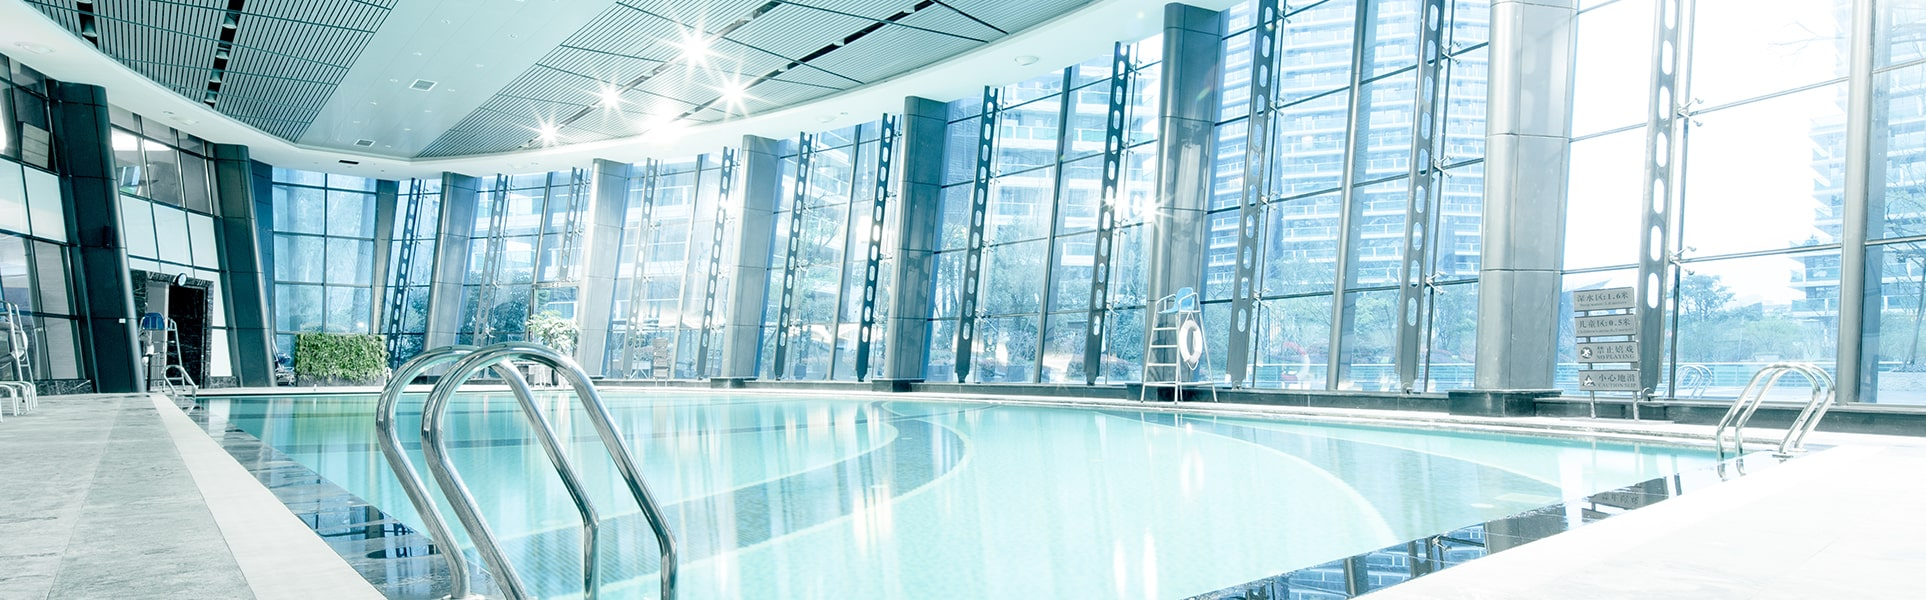 Image of indoor pool with dehumidification equipment installed by a Dehumidified Air Solutions Company